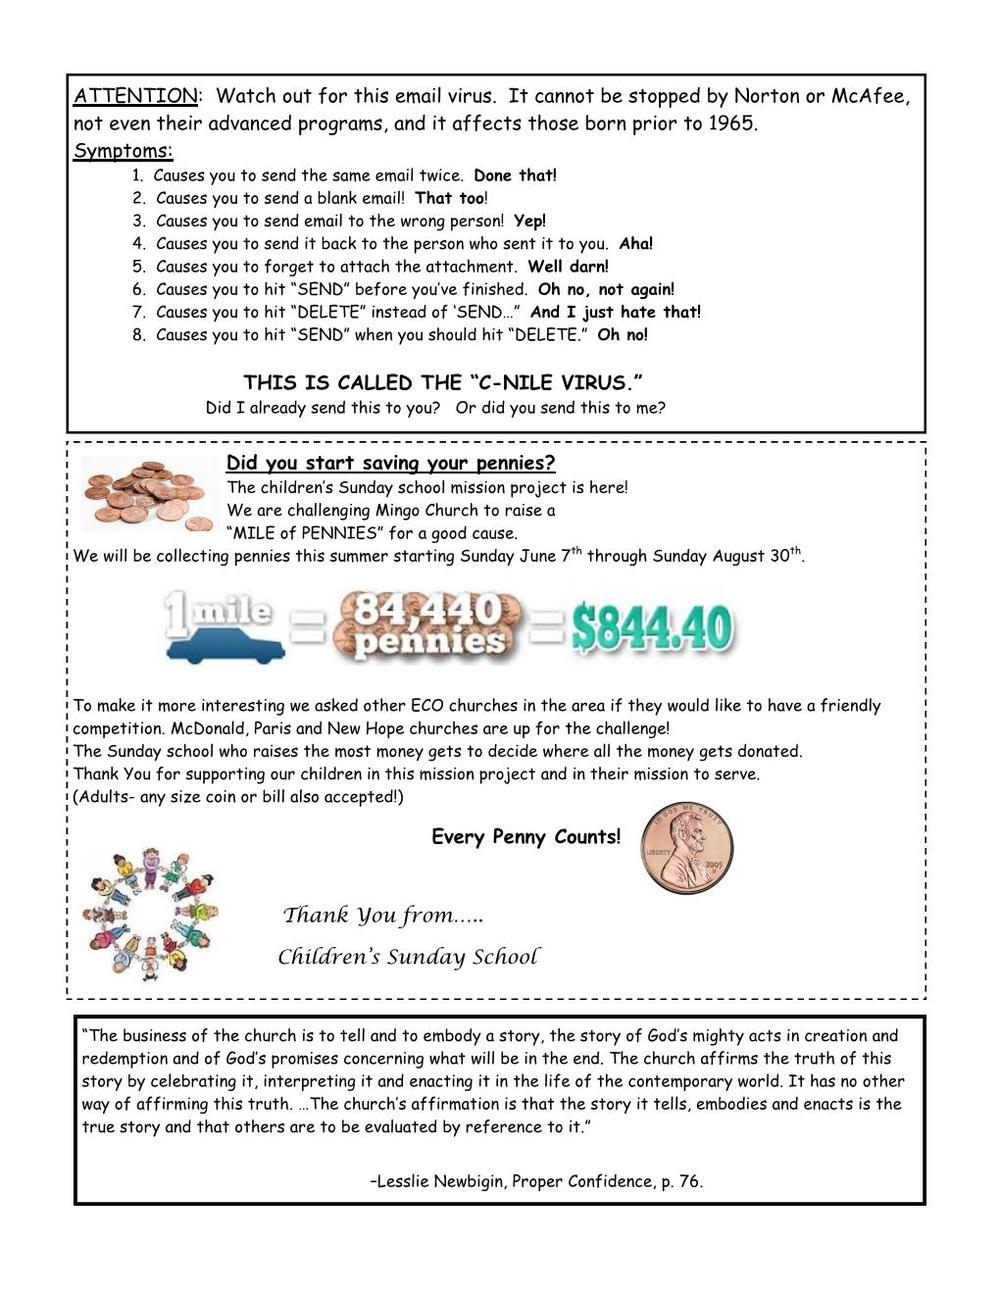 JUNE NEWSLETTER Page 007.jpg